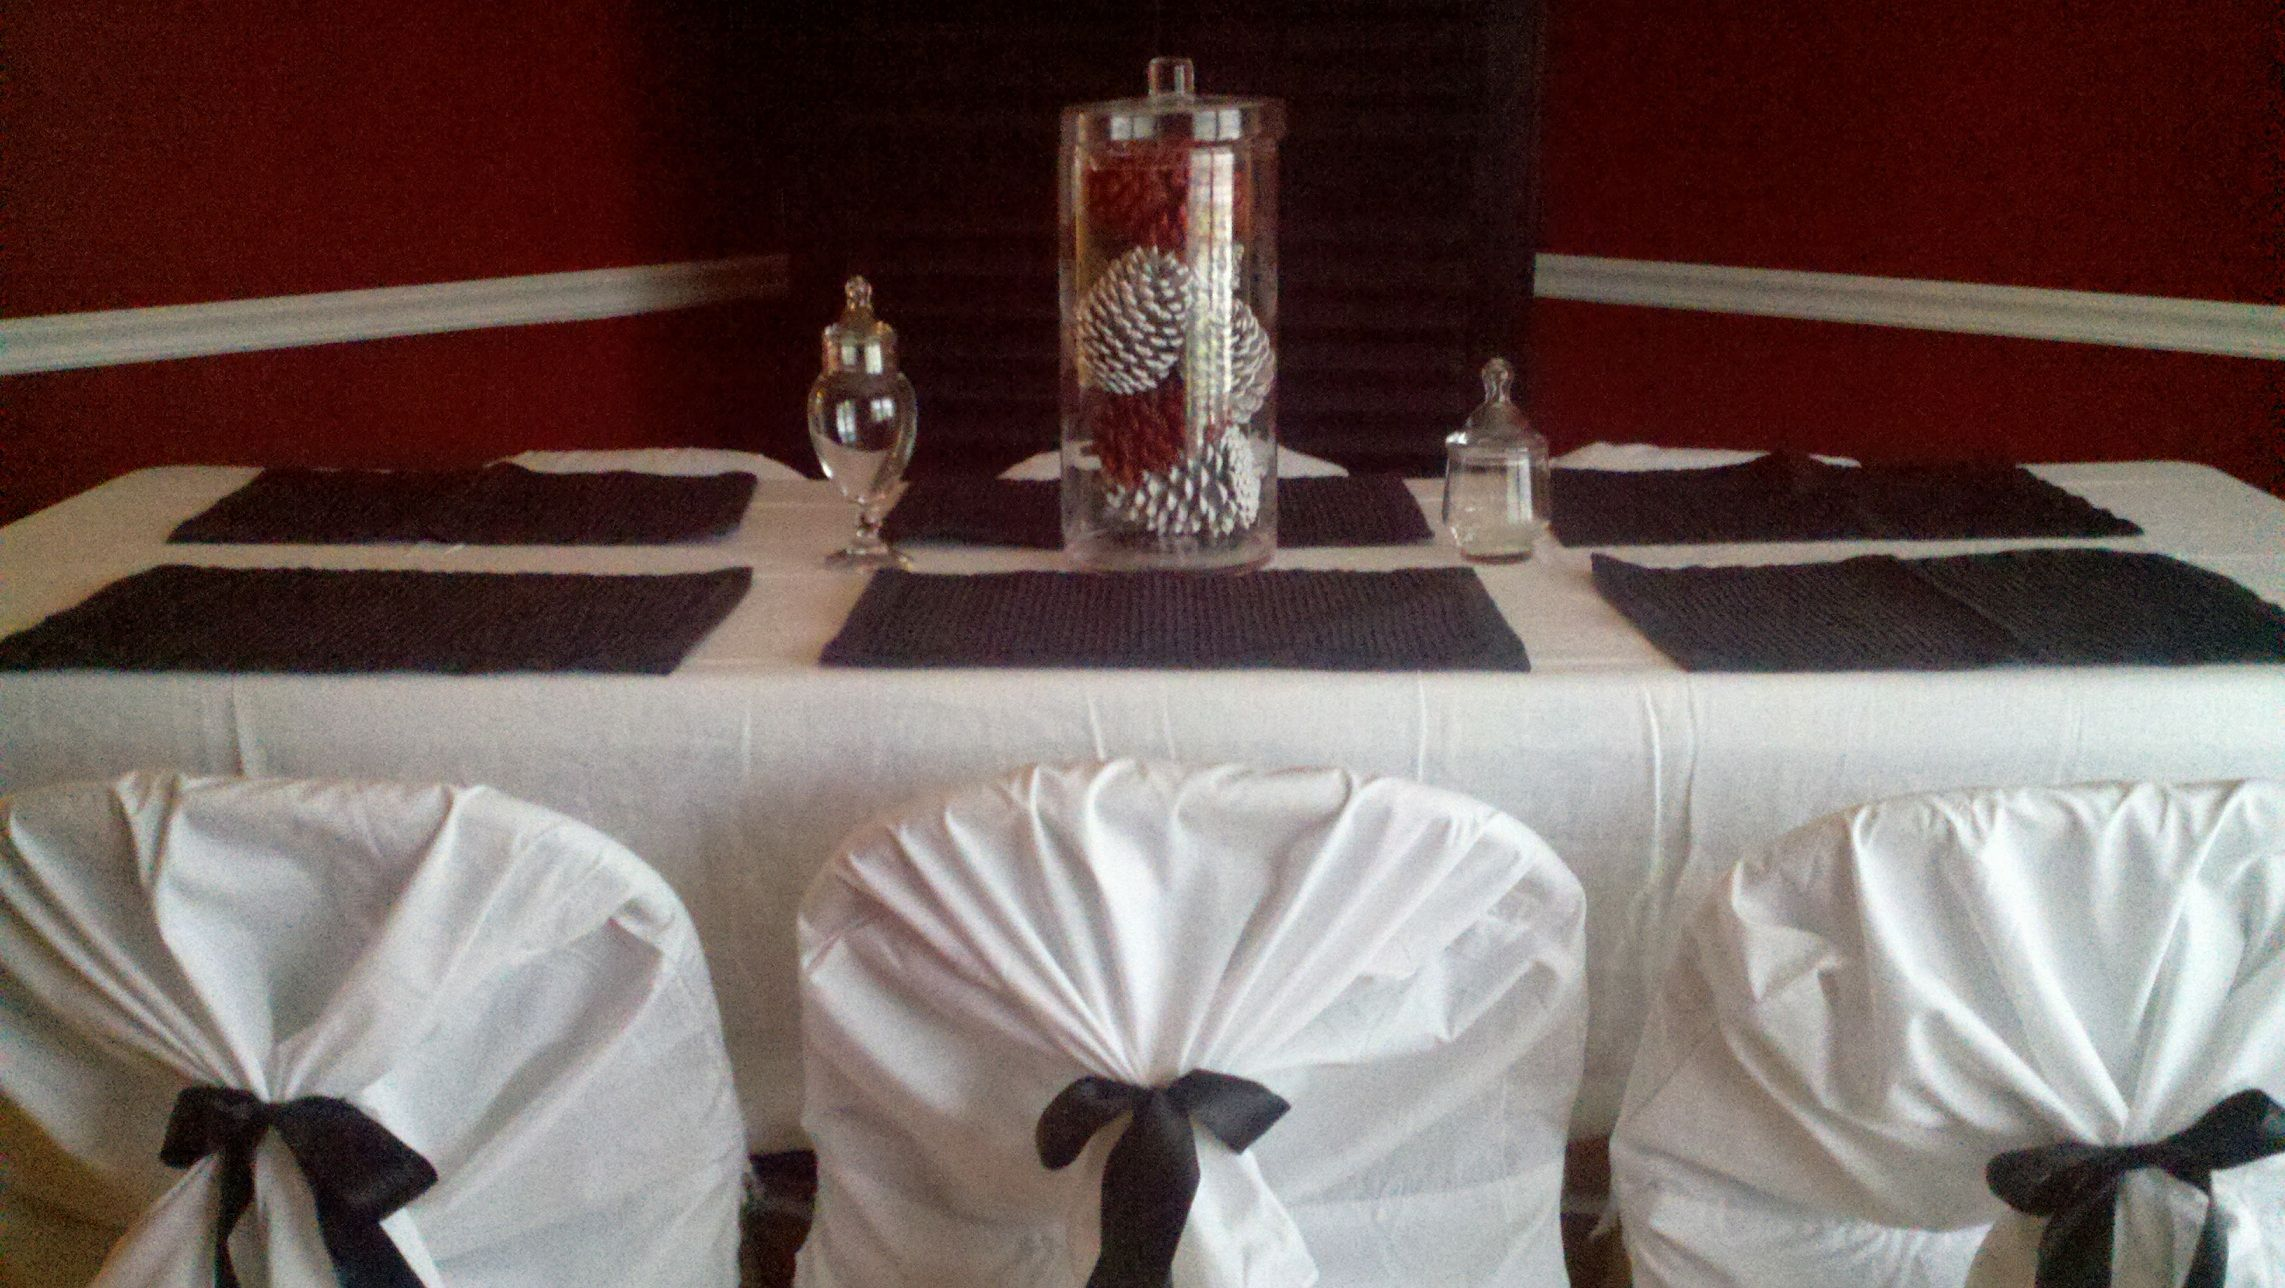 Pin by Valerie Carter on Entertaining  Diy chair covers, Fun easy